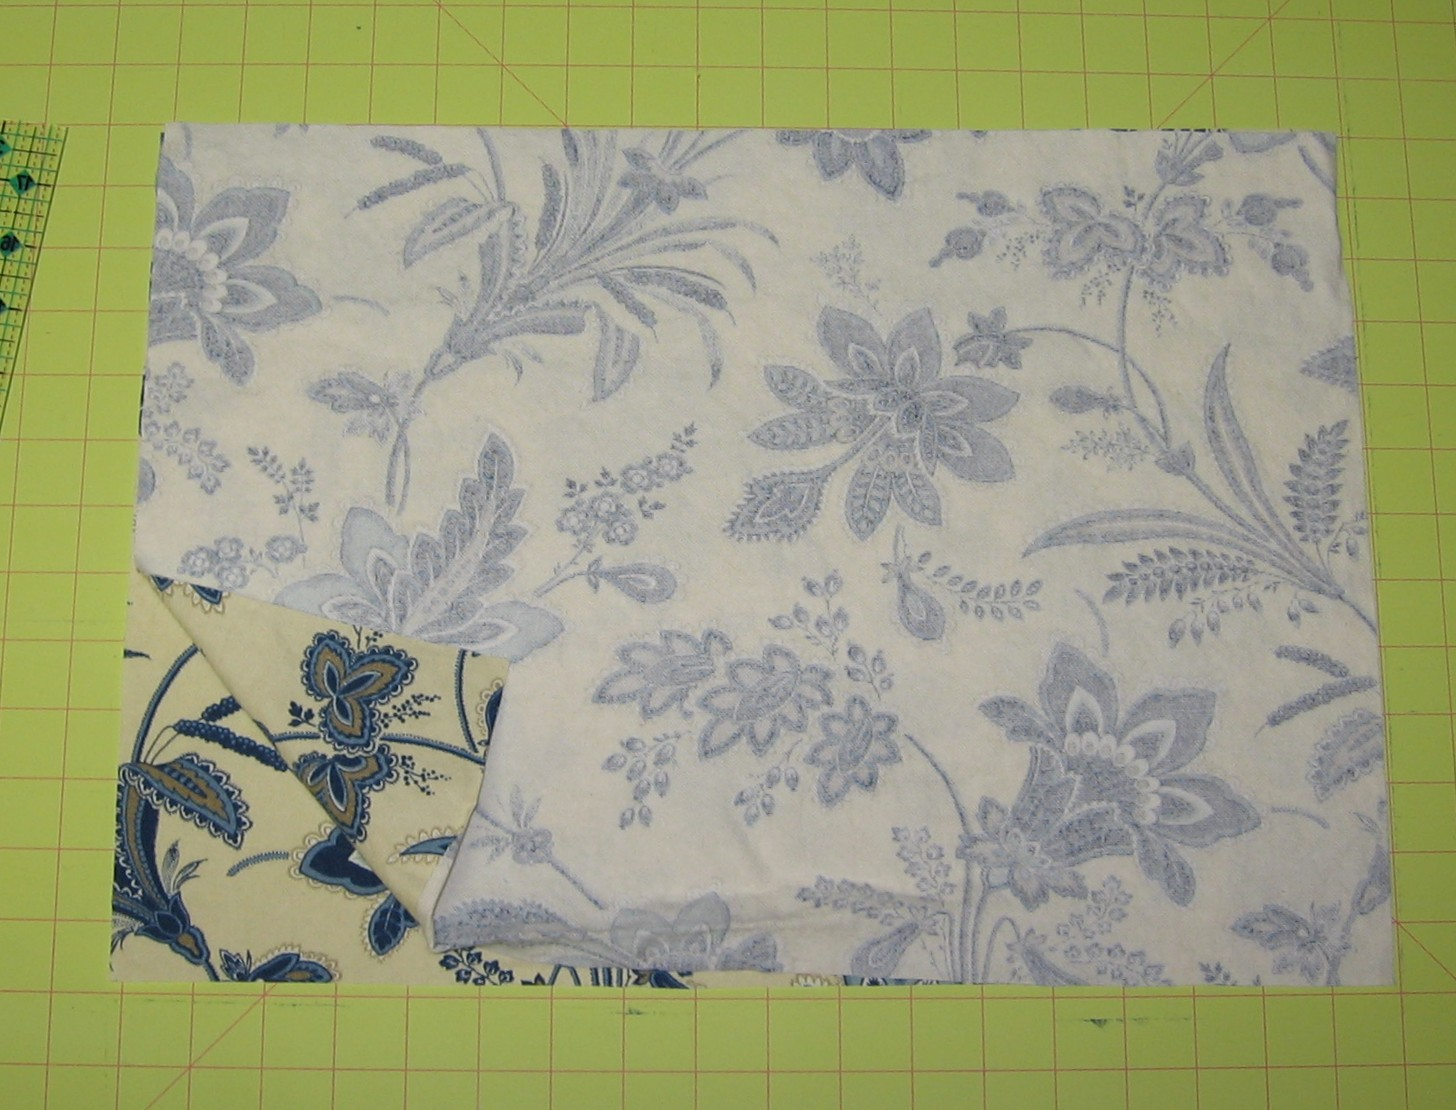 2 Pieces of fabric right sides facing